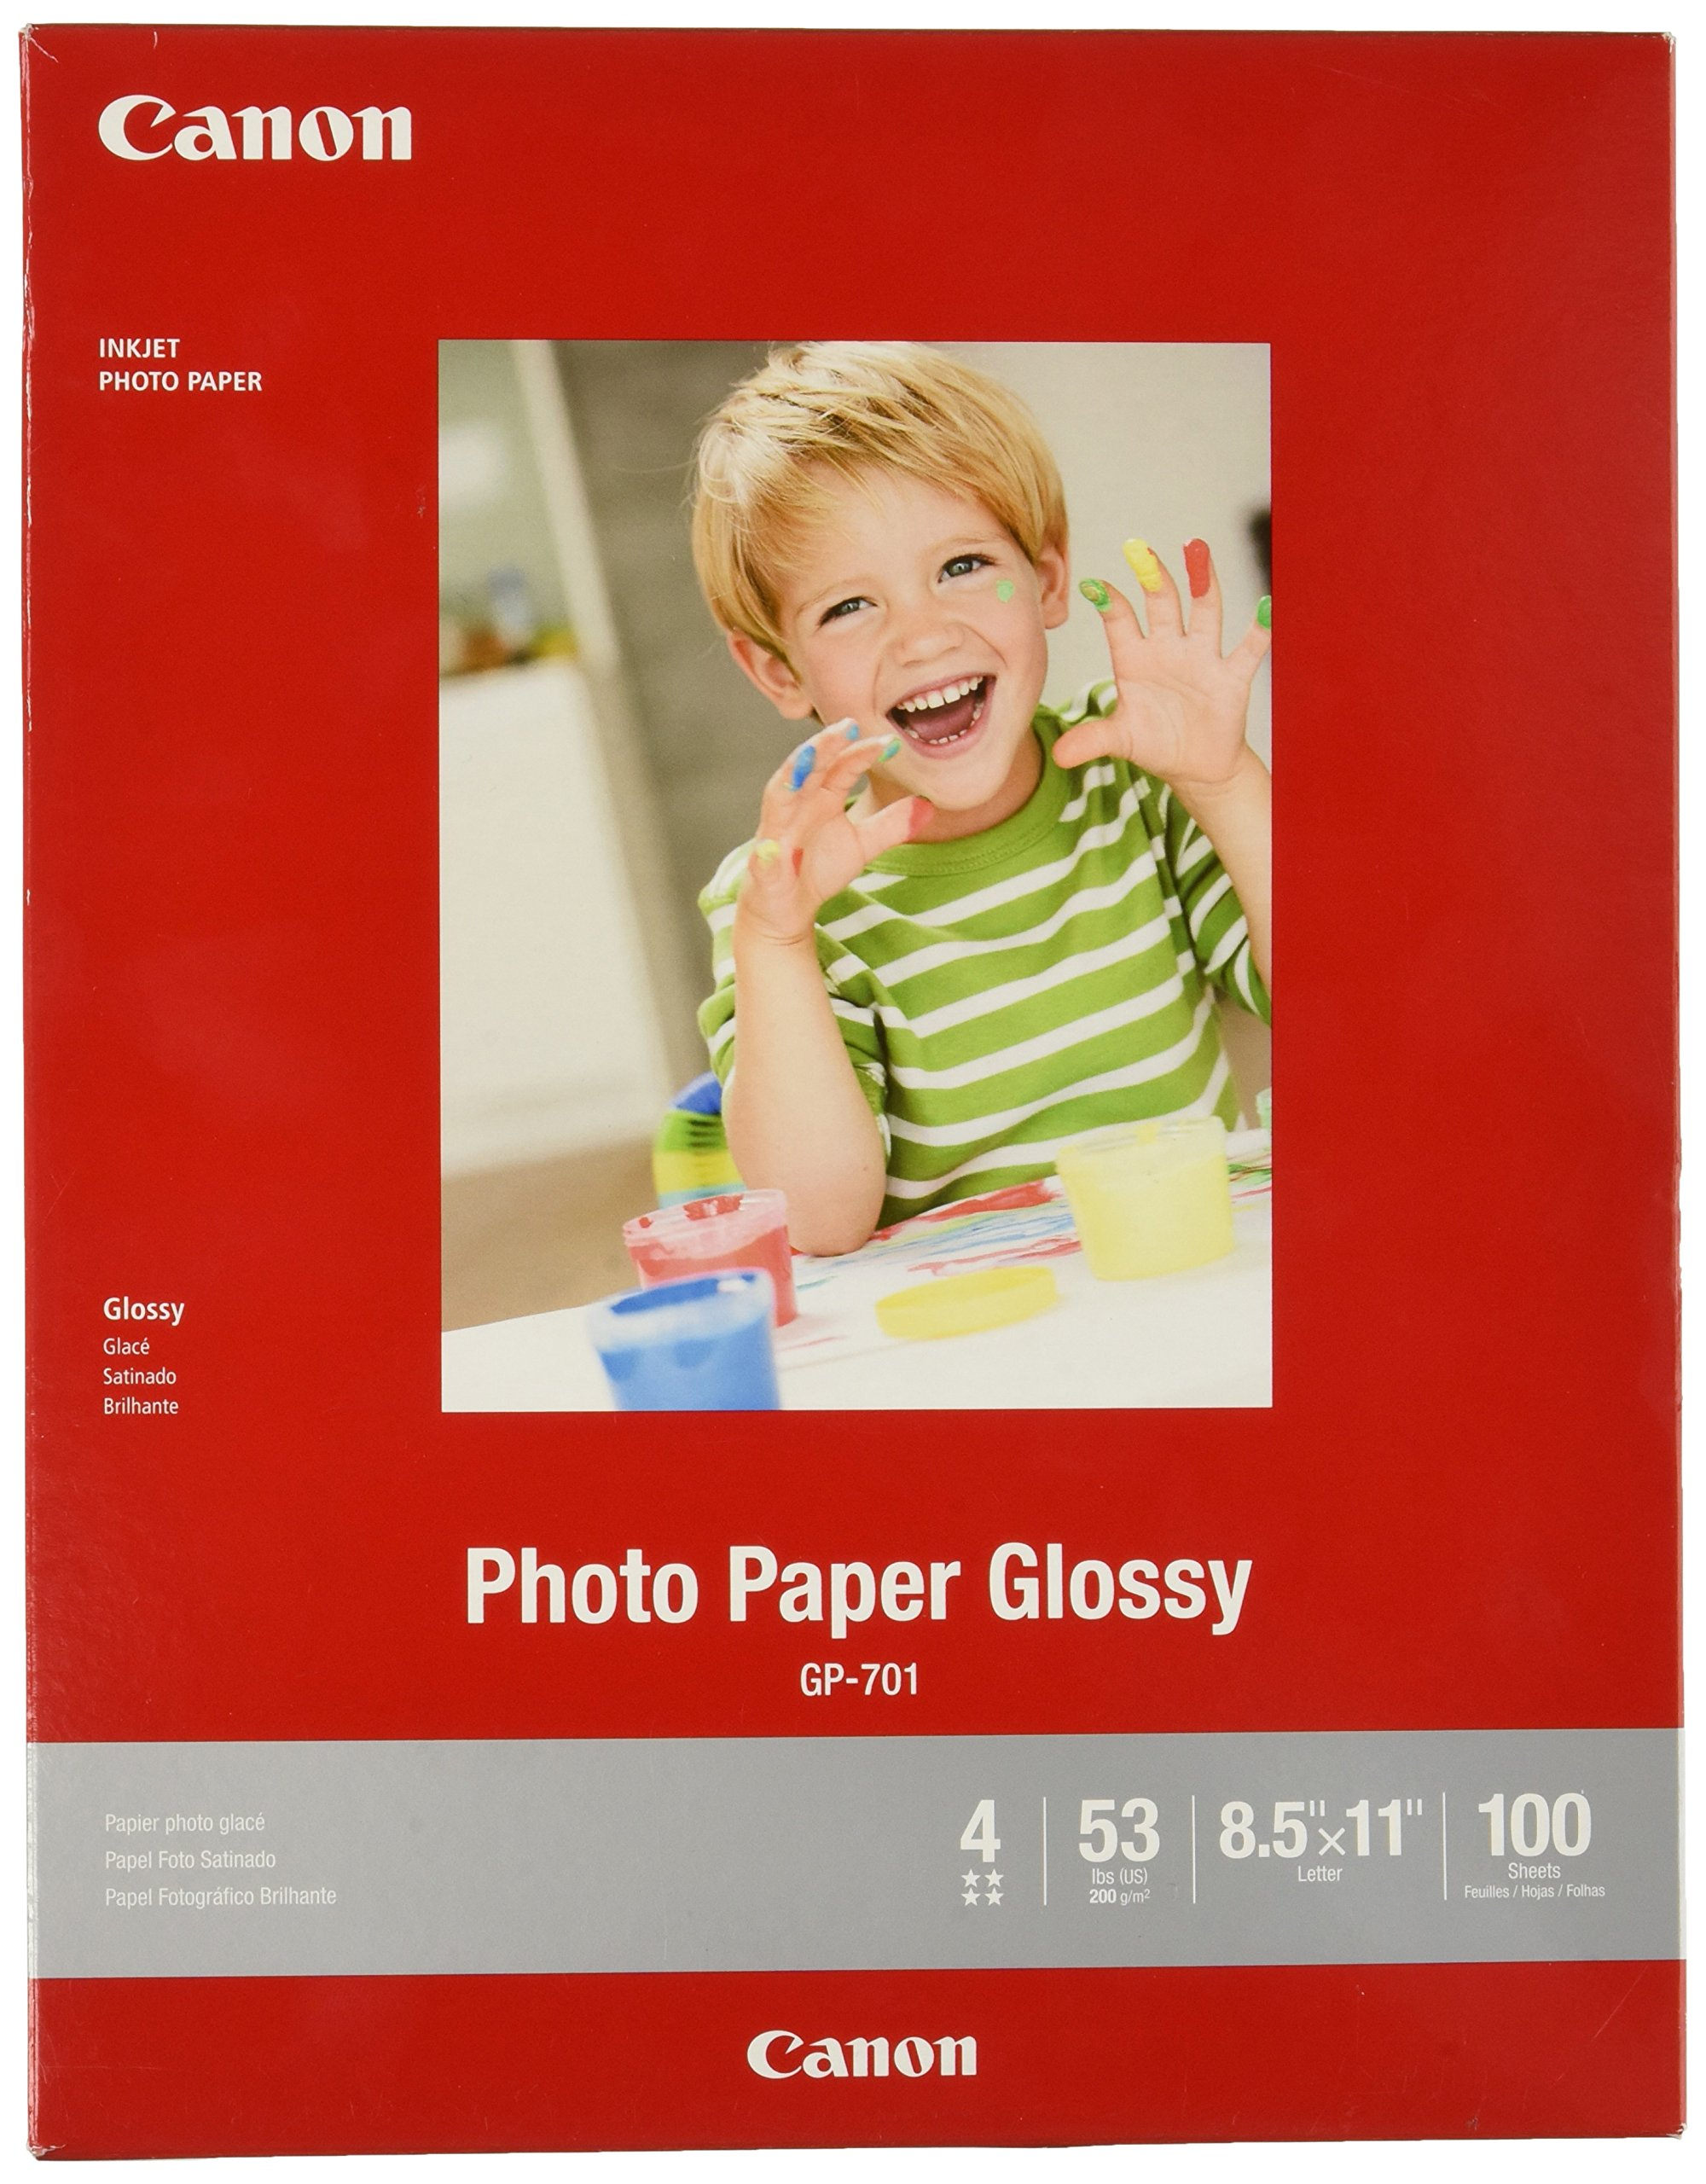 CanonInk Glossy Photo Paper 8.5'' x 11'' 100 Sheets (1433C004)